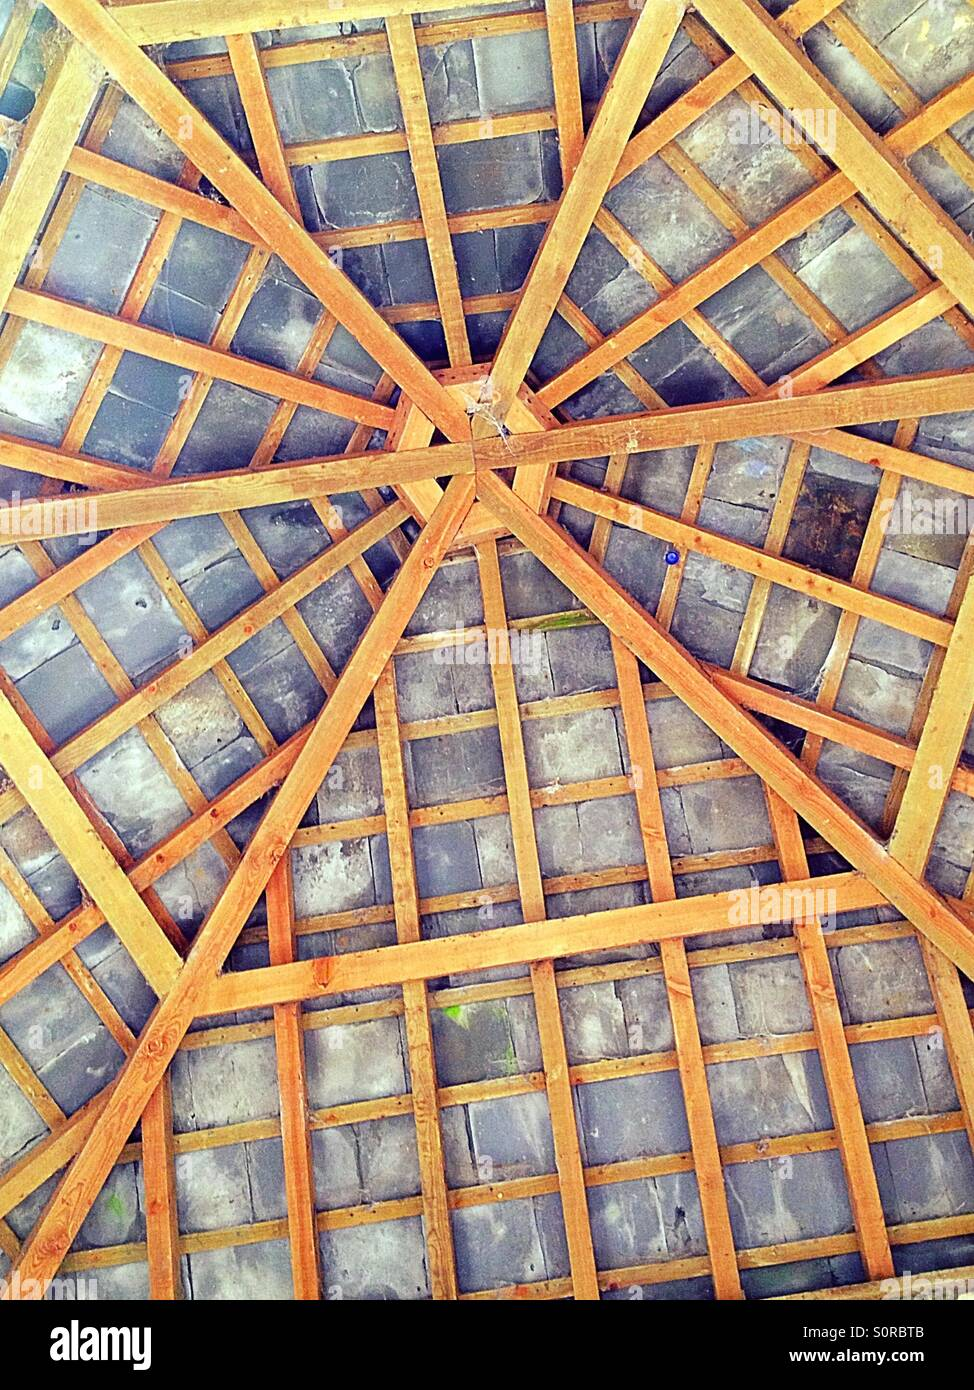 Hexagonal roof frame structure stock photo royalty free for Hexagonal roof framing